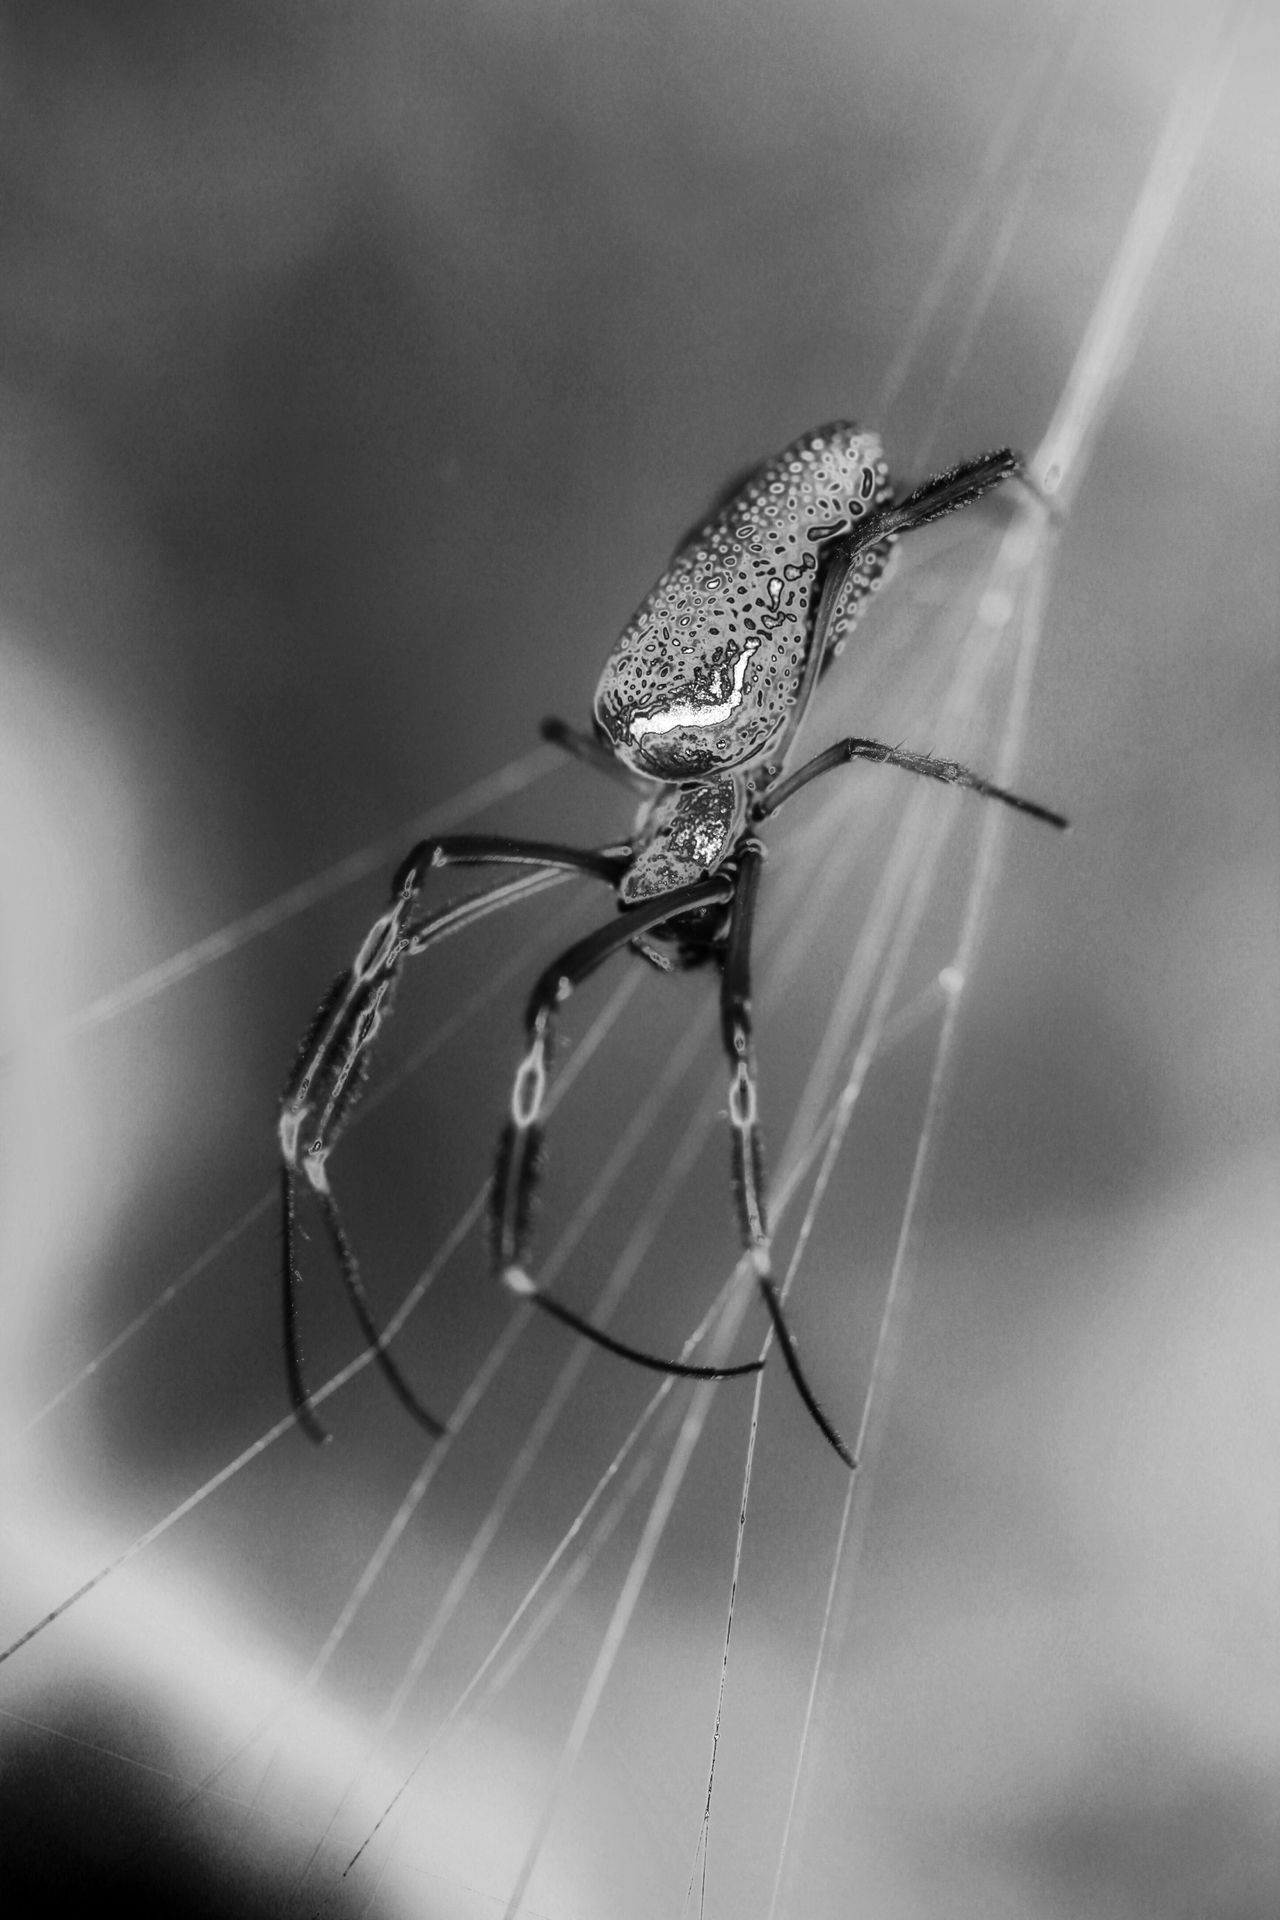 Welcome To Black Spider Animal Themes Black & White Black And White Photography Blackandwhitephotography Curves Of Nature Animals In The Wild Close-up My Edit My Style Shadows And Silhouettes Animal Wildlife My Dramatic Look